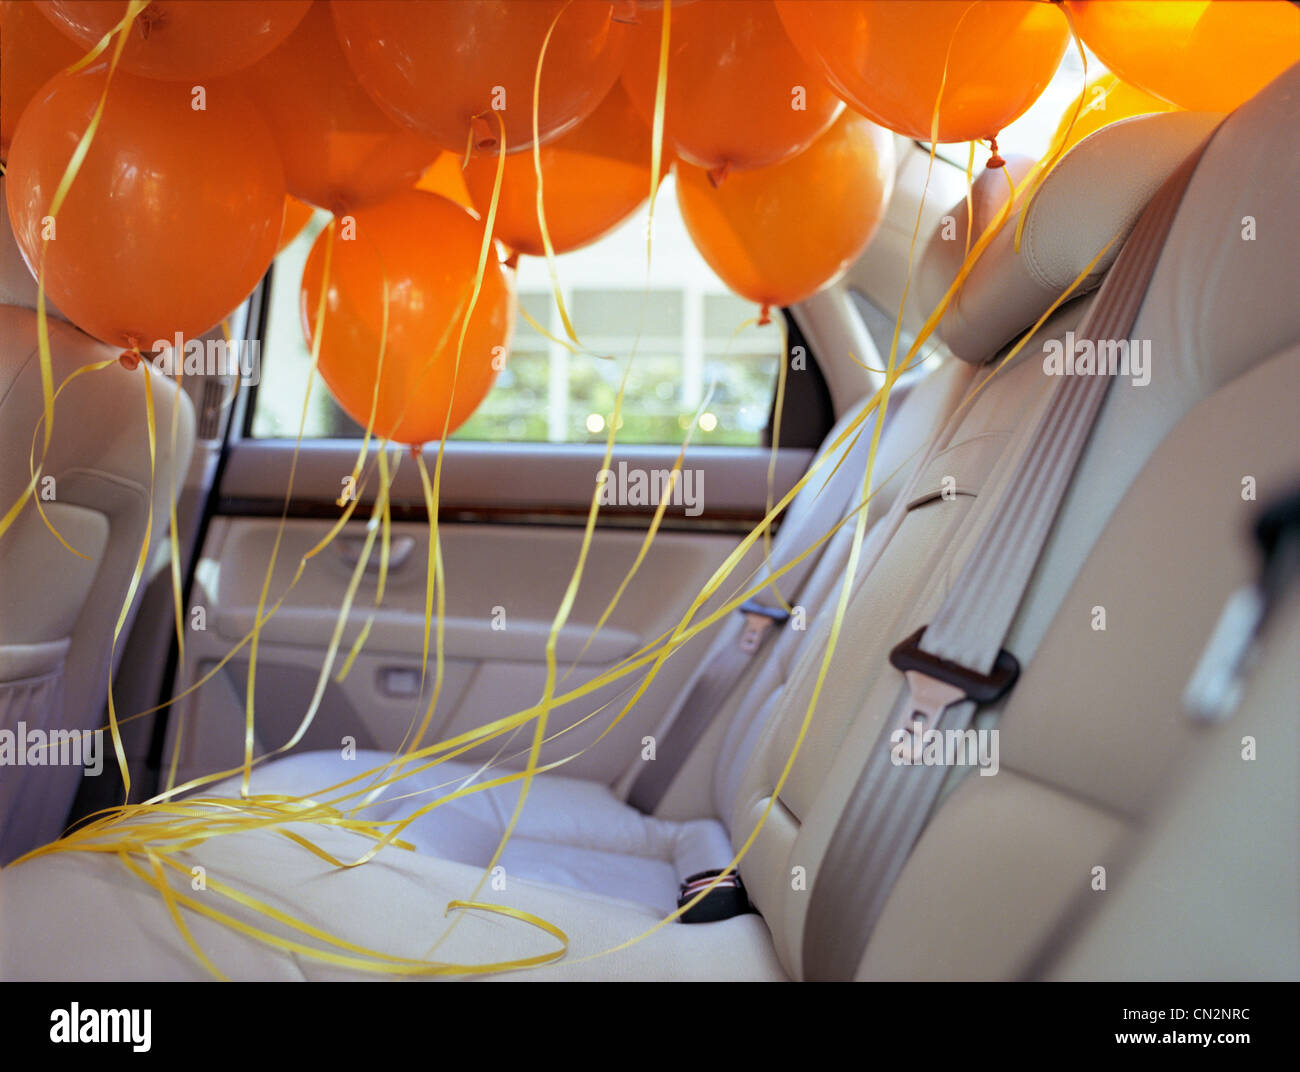 Orange balloons in back seat of car - Stock Image